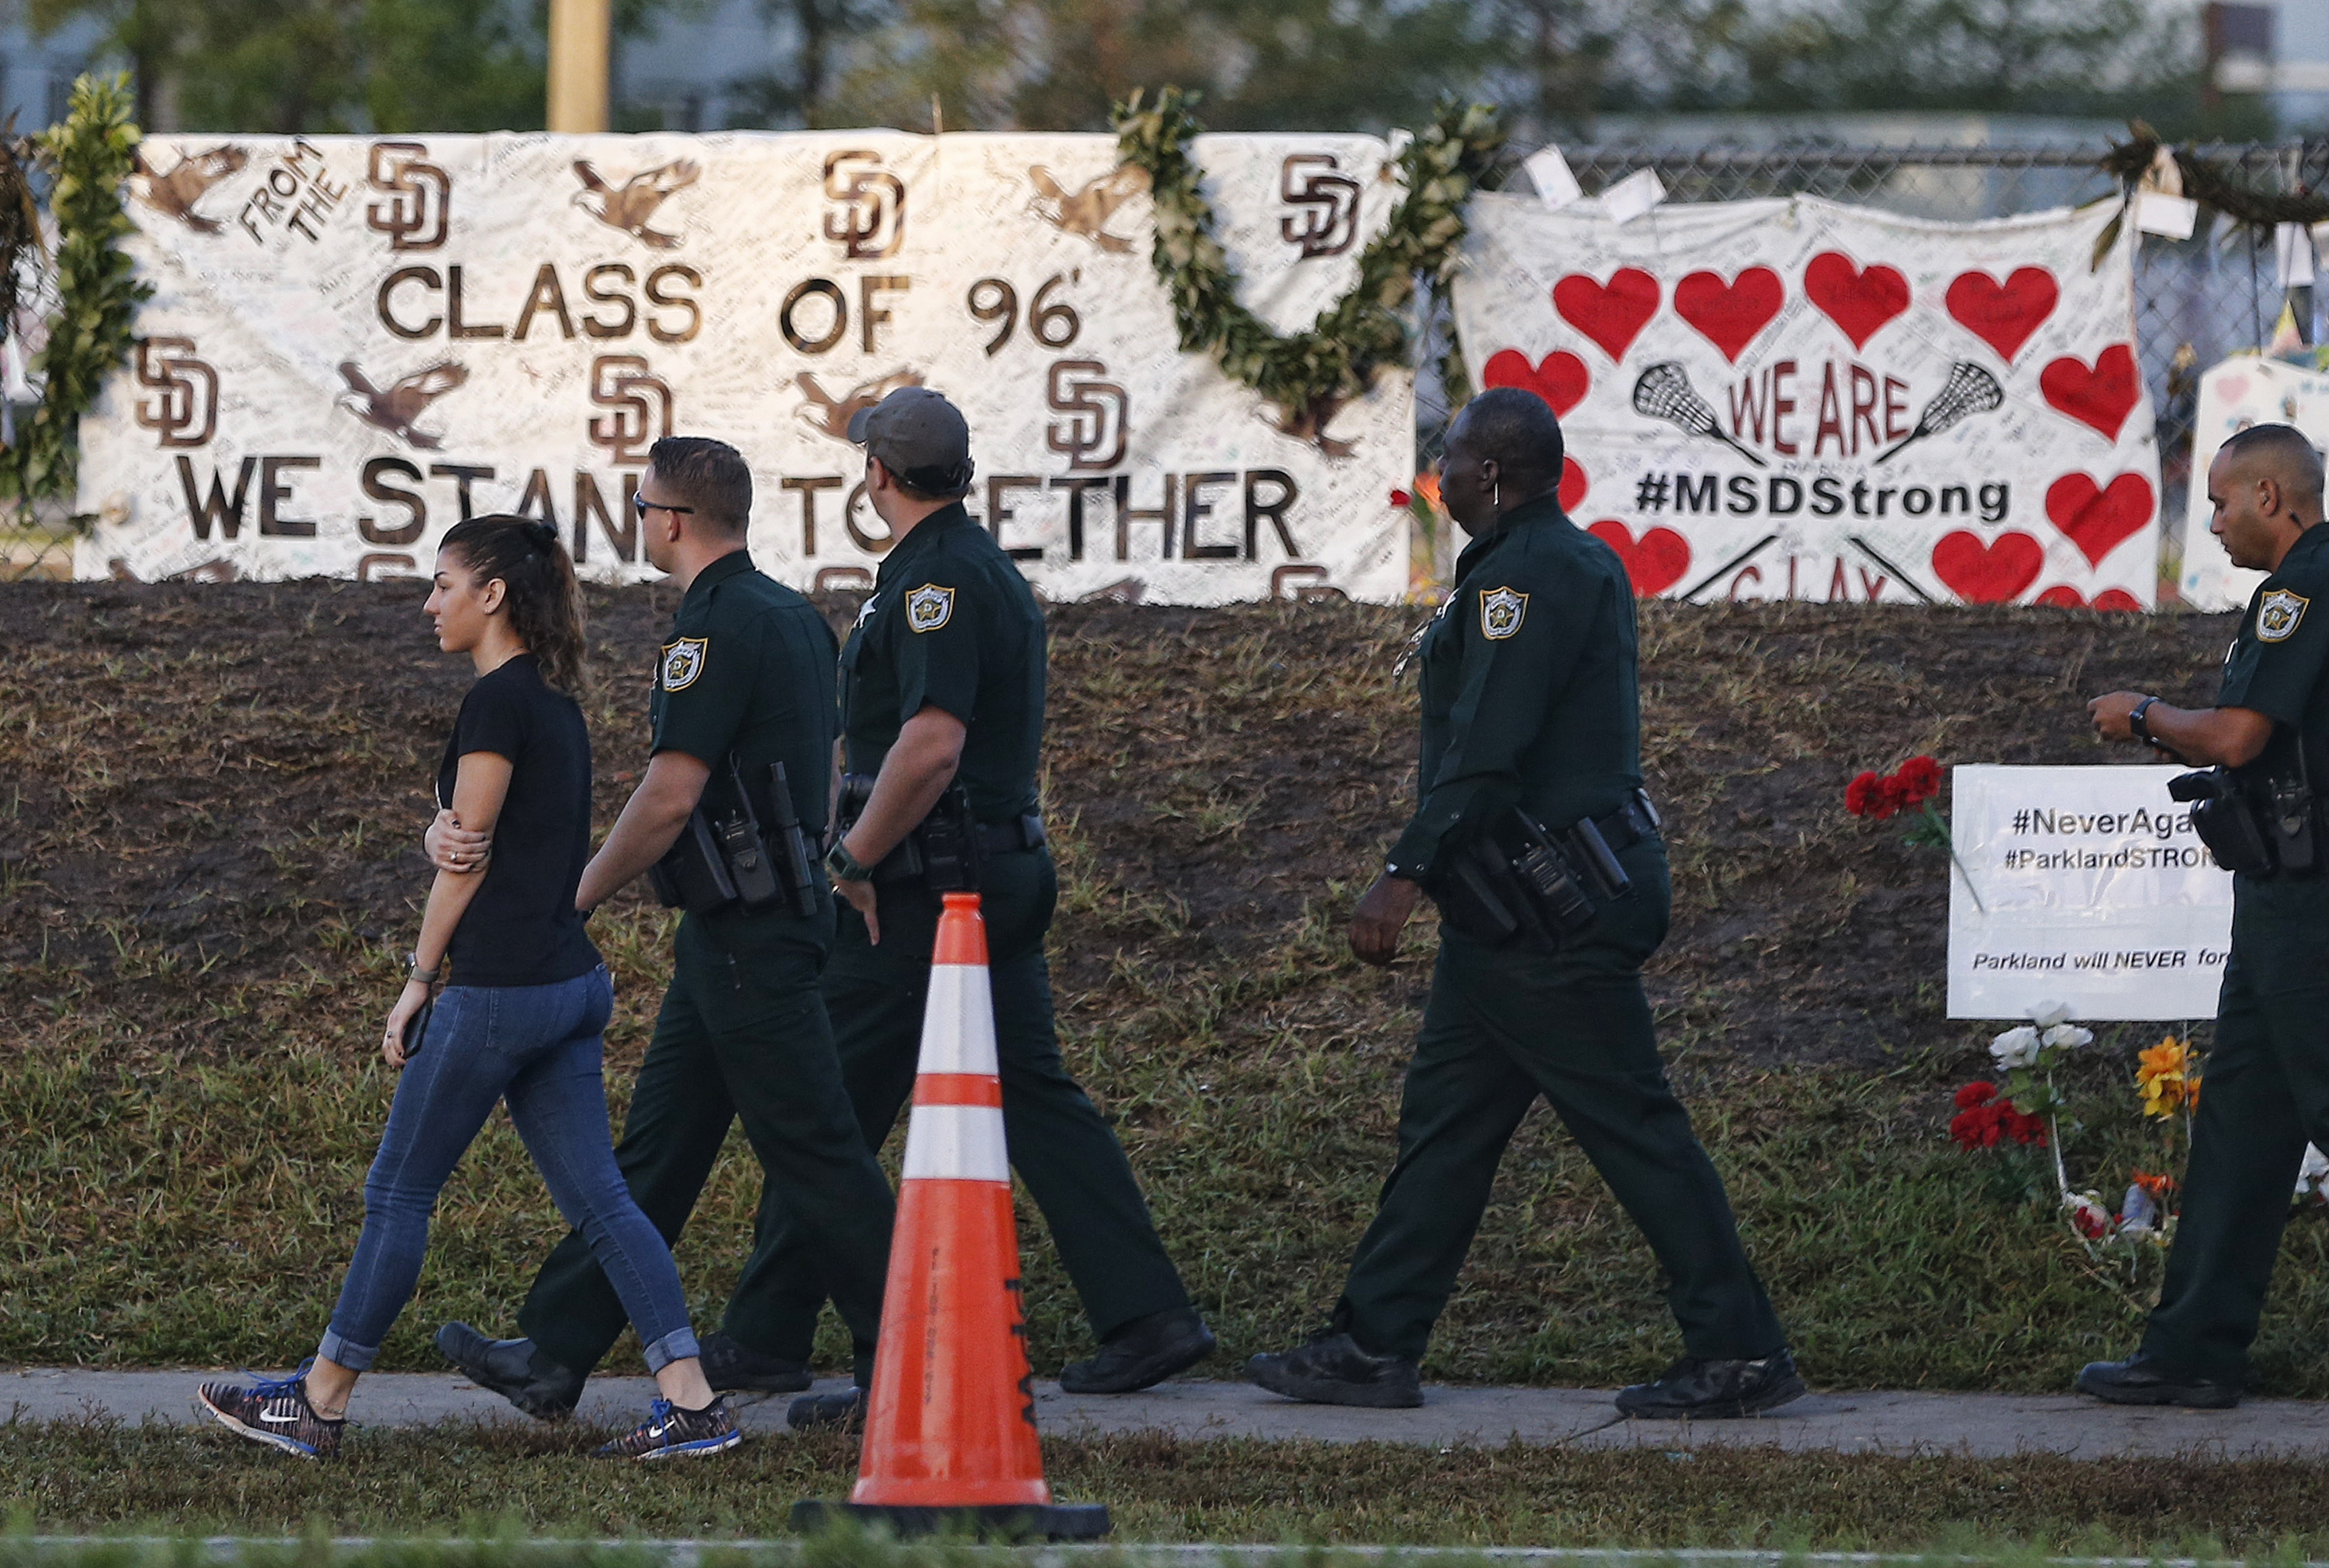 Marjory Stoneman Douglas High School staff, teachers and students return to school greeted by police and well wishers in Parkland, Florida on Feb. 28, 2018.